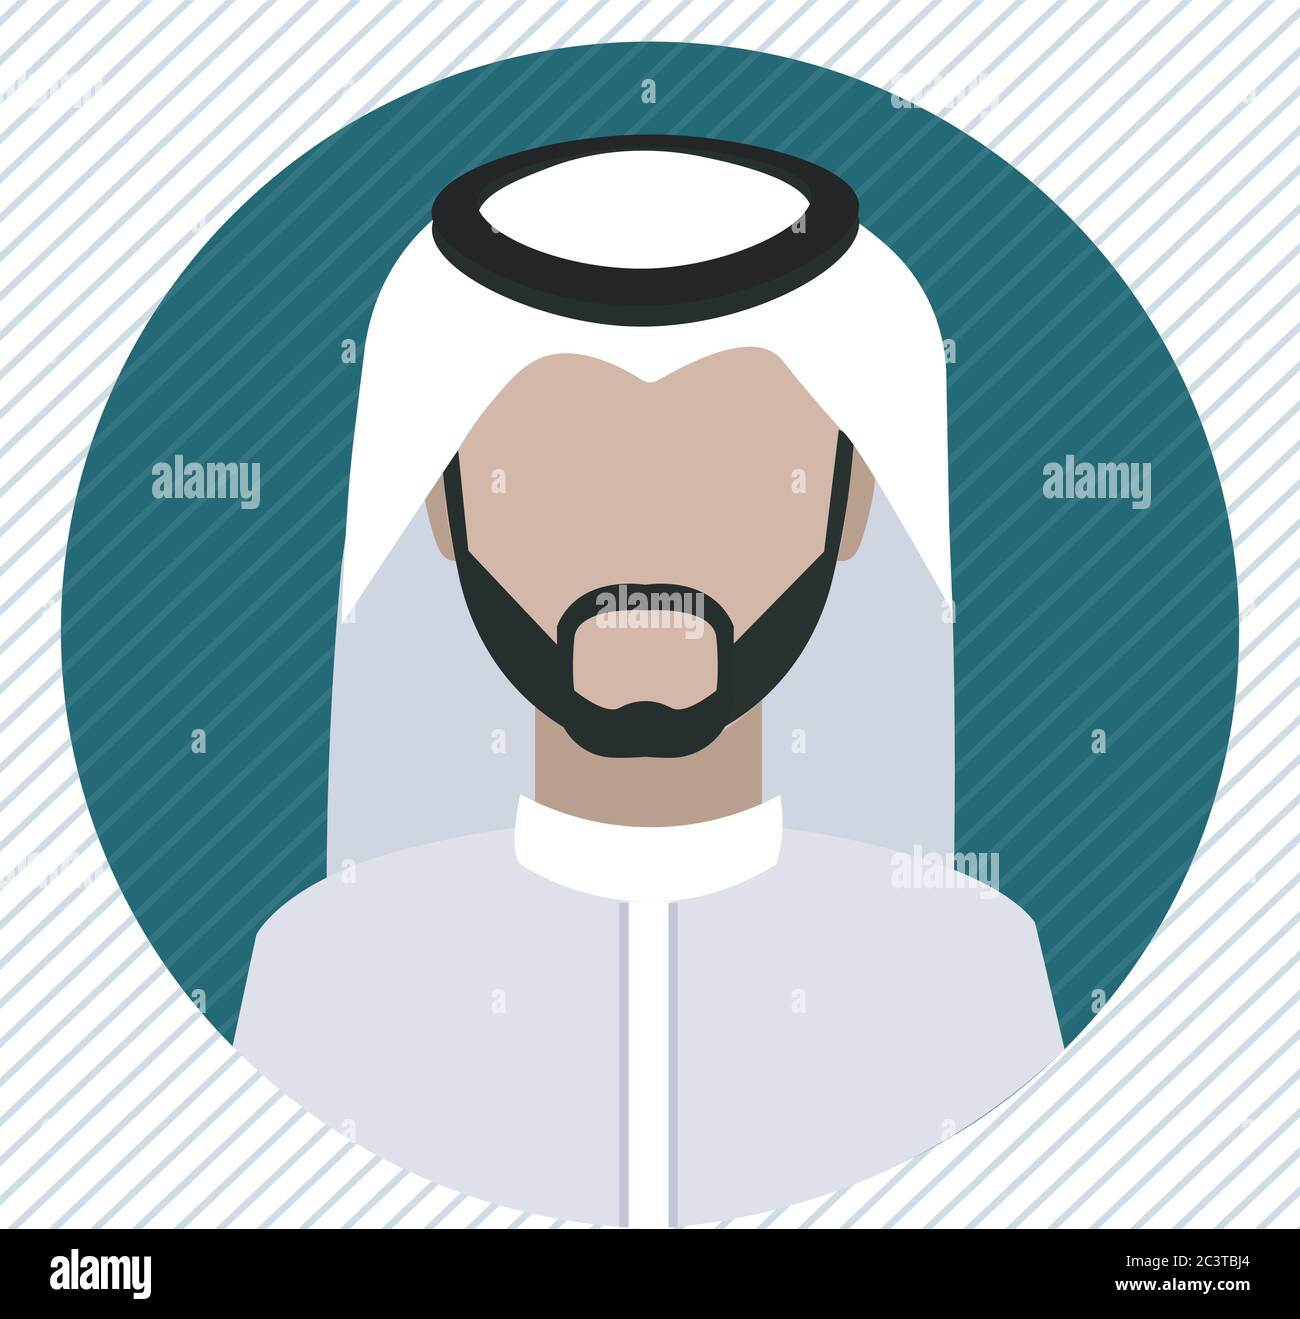 A Saudi man icon wearing shemagh and a thobe Stock Vector